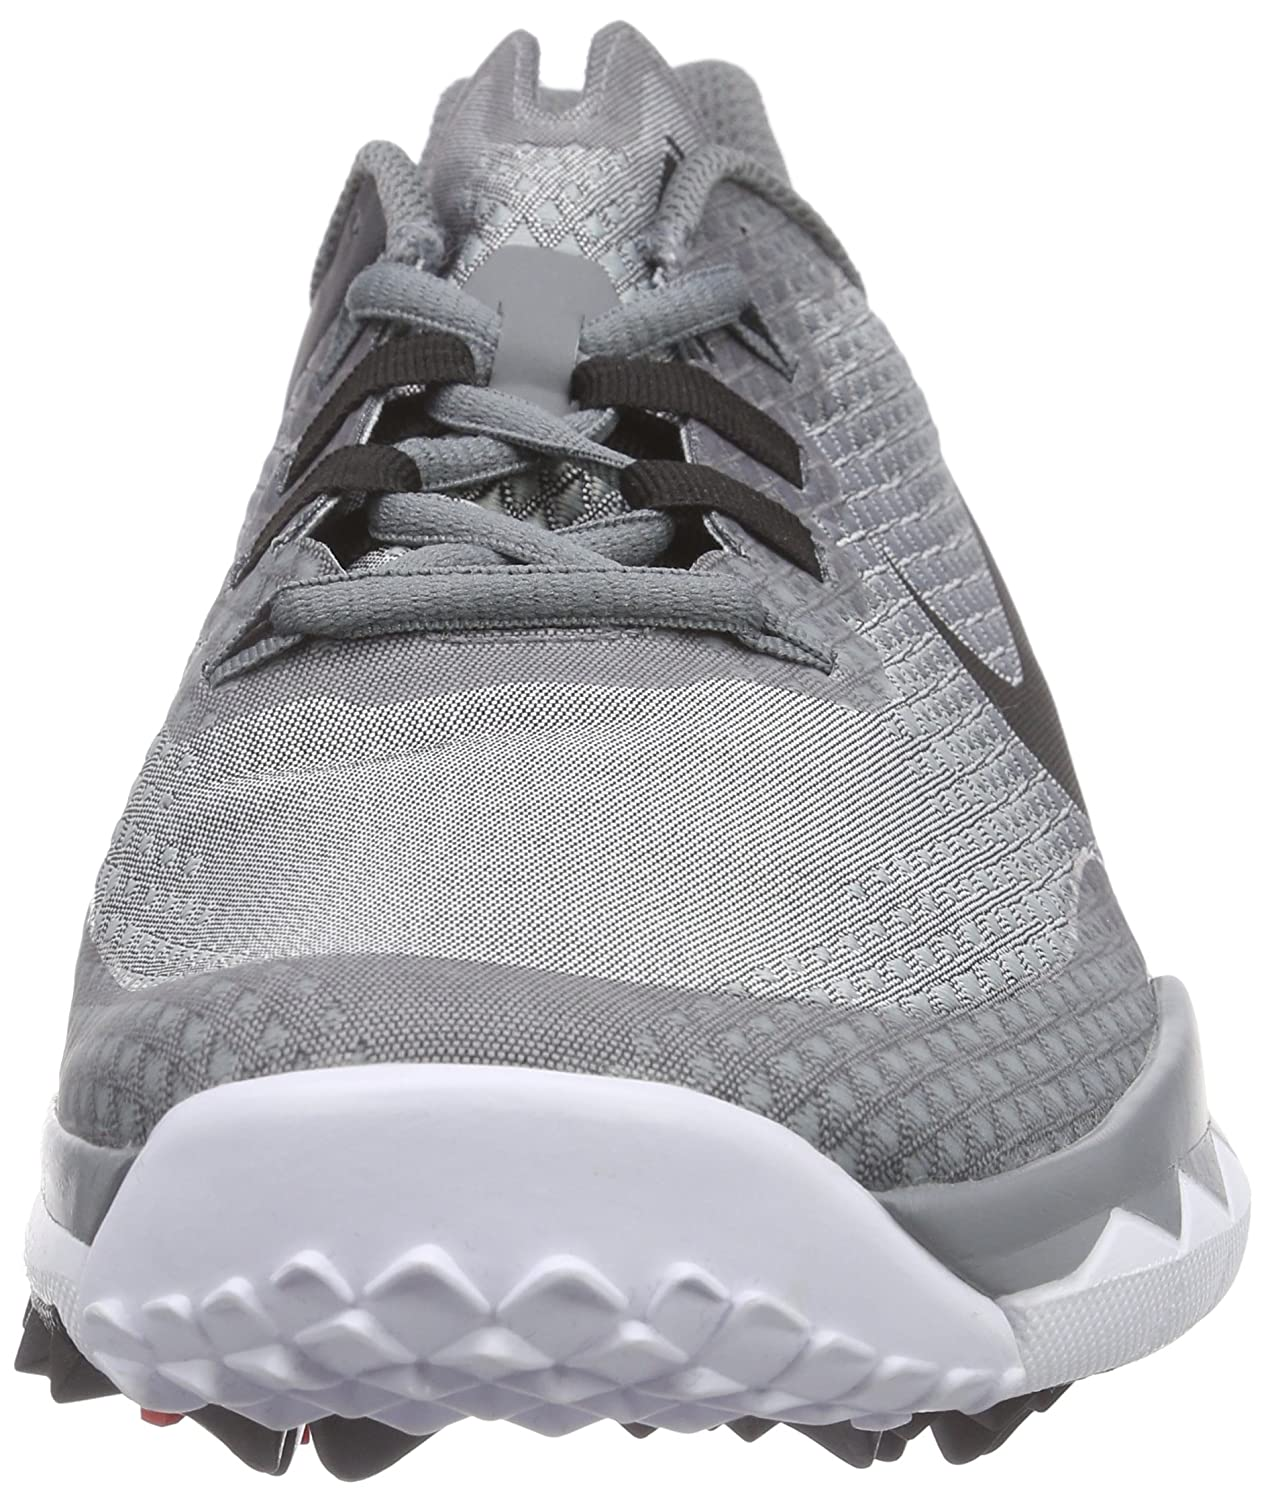 d30a8c316c62 Amazon.com  Nike TW  15 Men s Golf Shoe 704884-002 8.5M  Sports   Outdoors